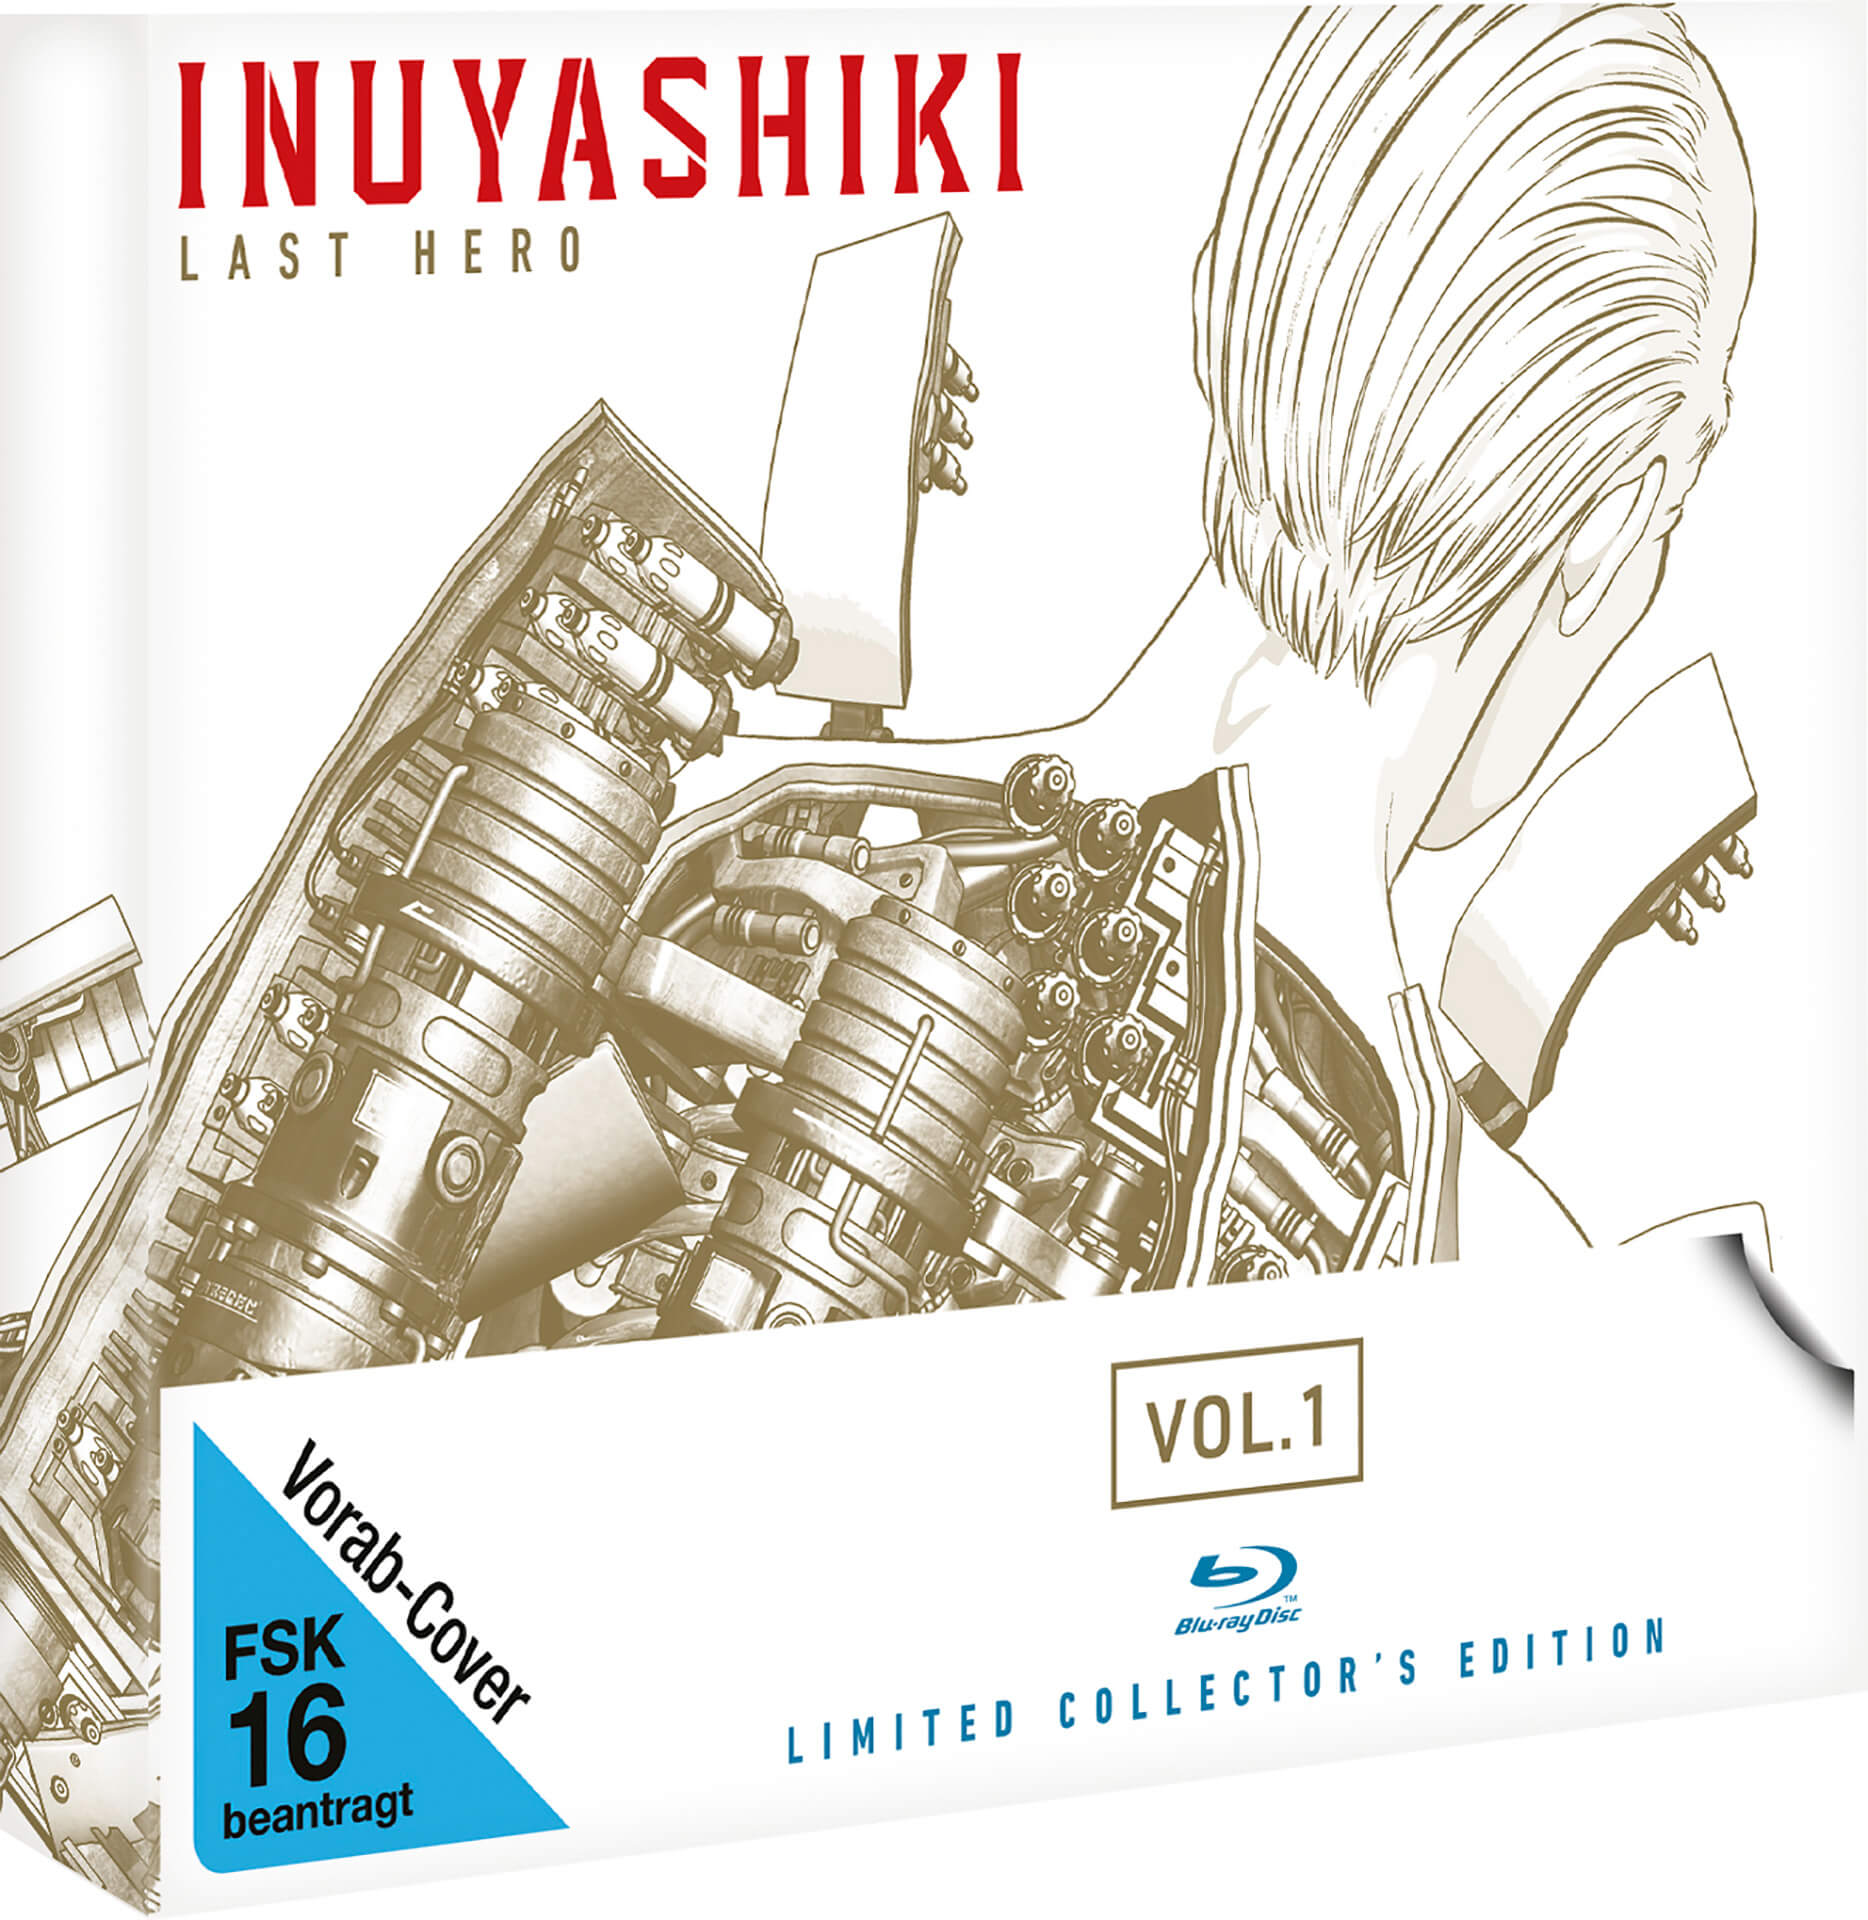 Inuyashiki Last Hero – Vol. 1 – Limited Collector's Edition